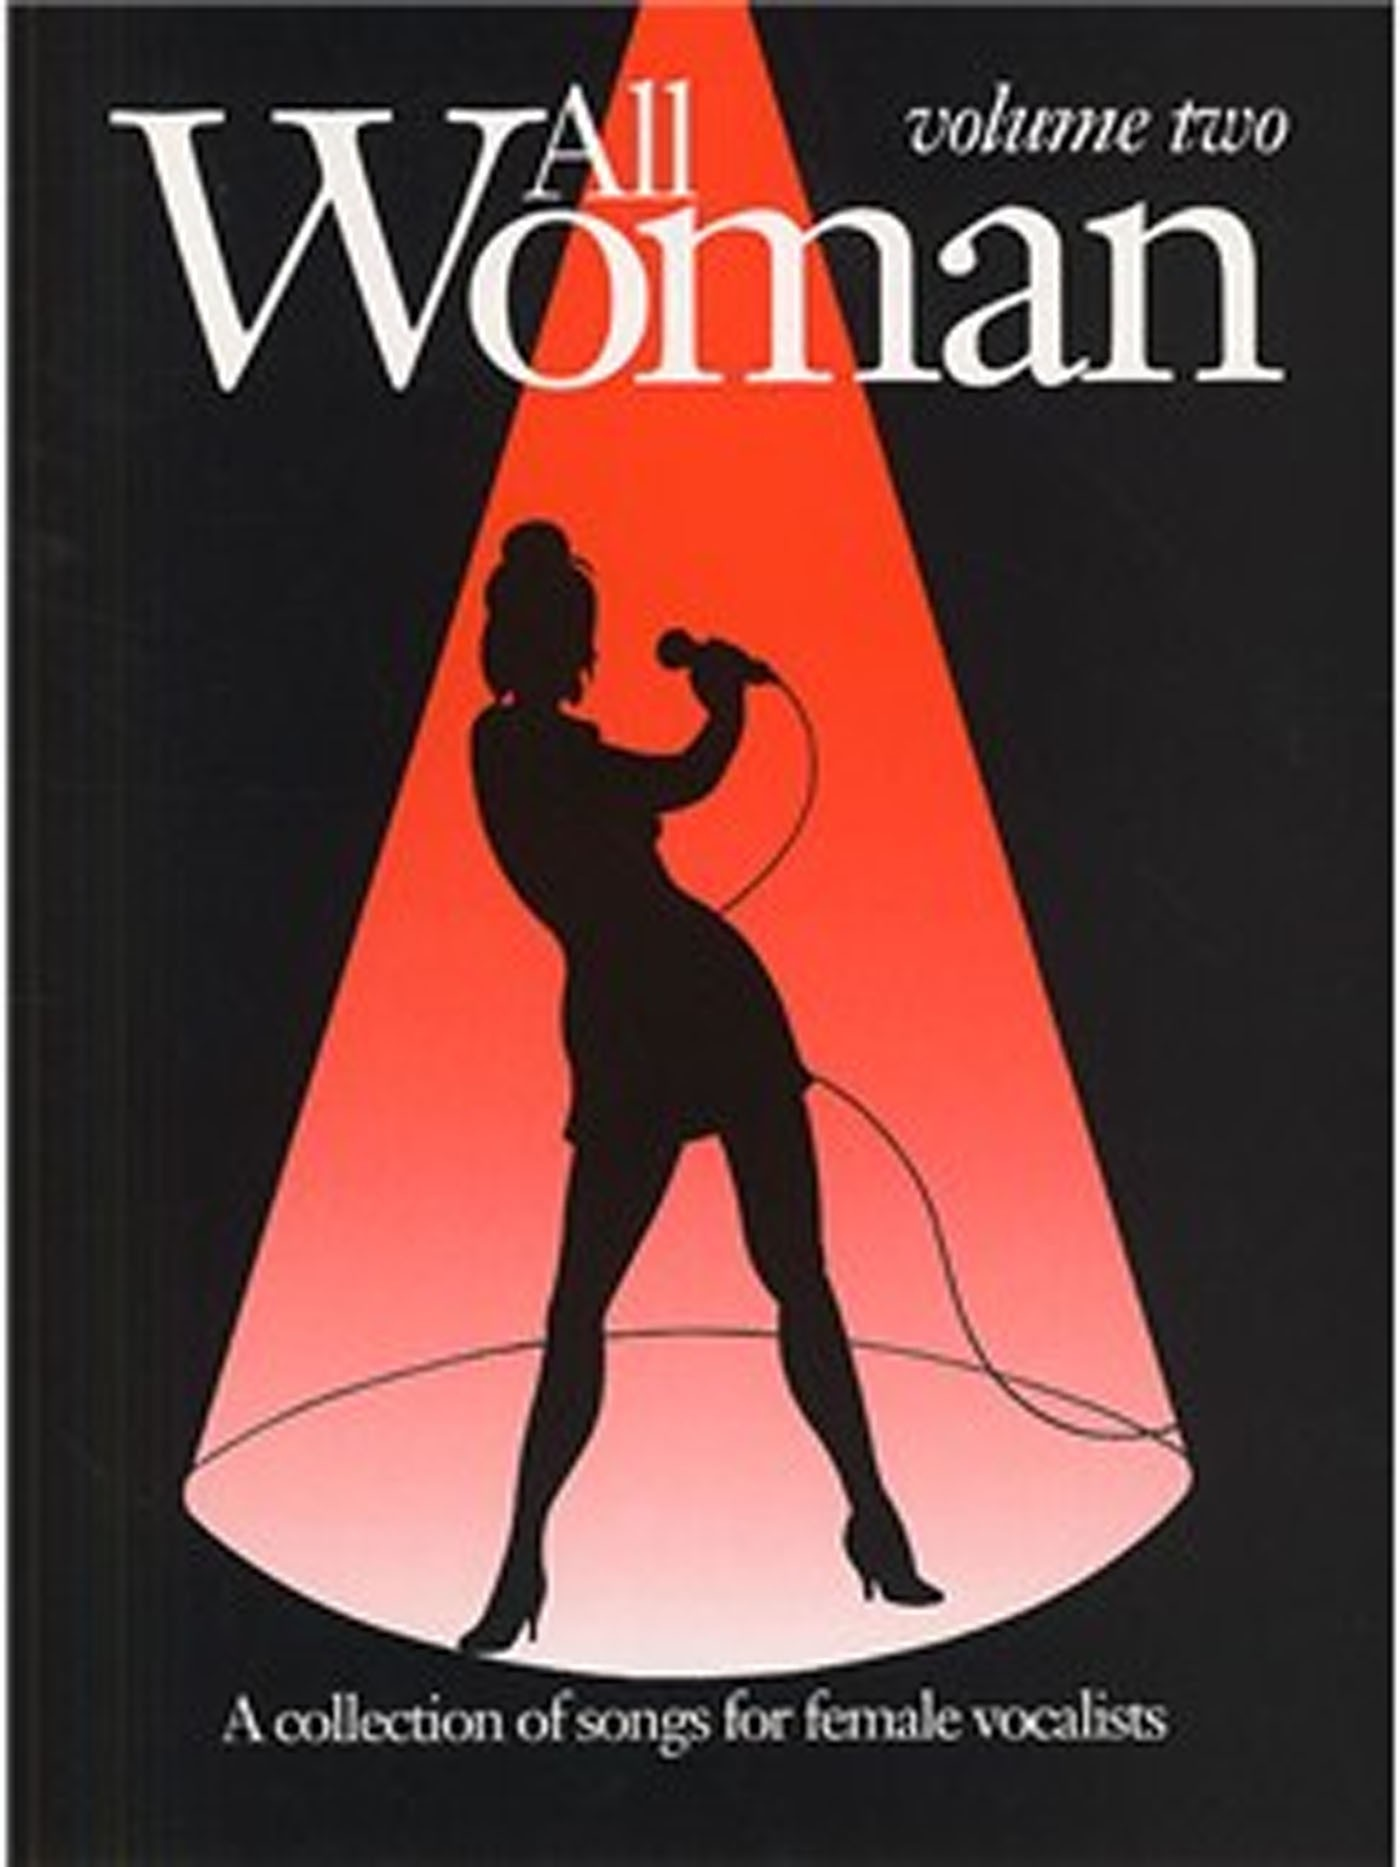 All Woman Volume 2 A Collection Of Songs For Female Vocalists S146